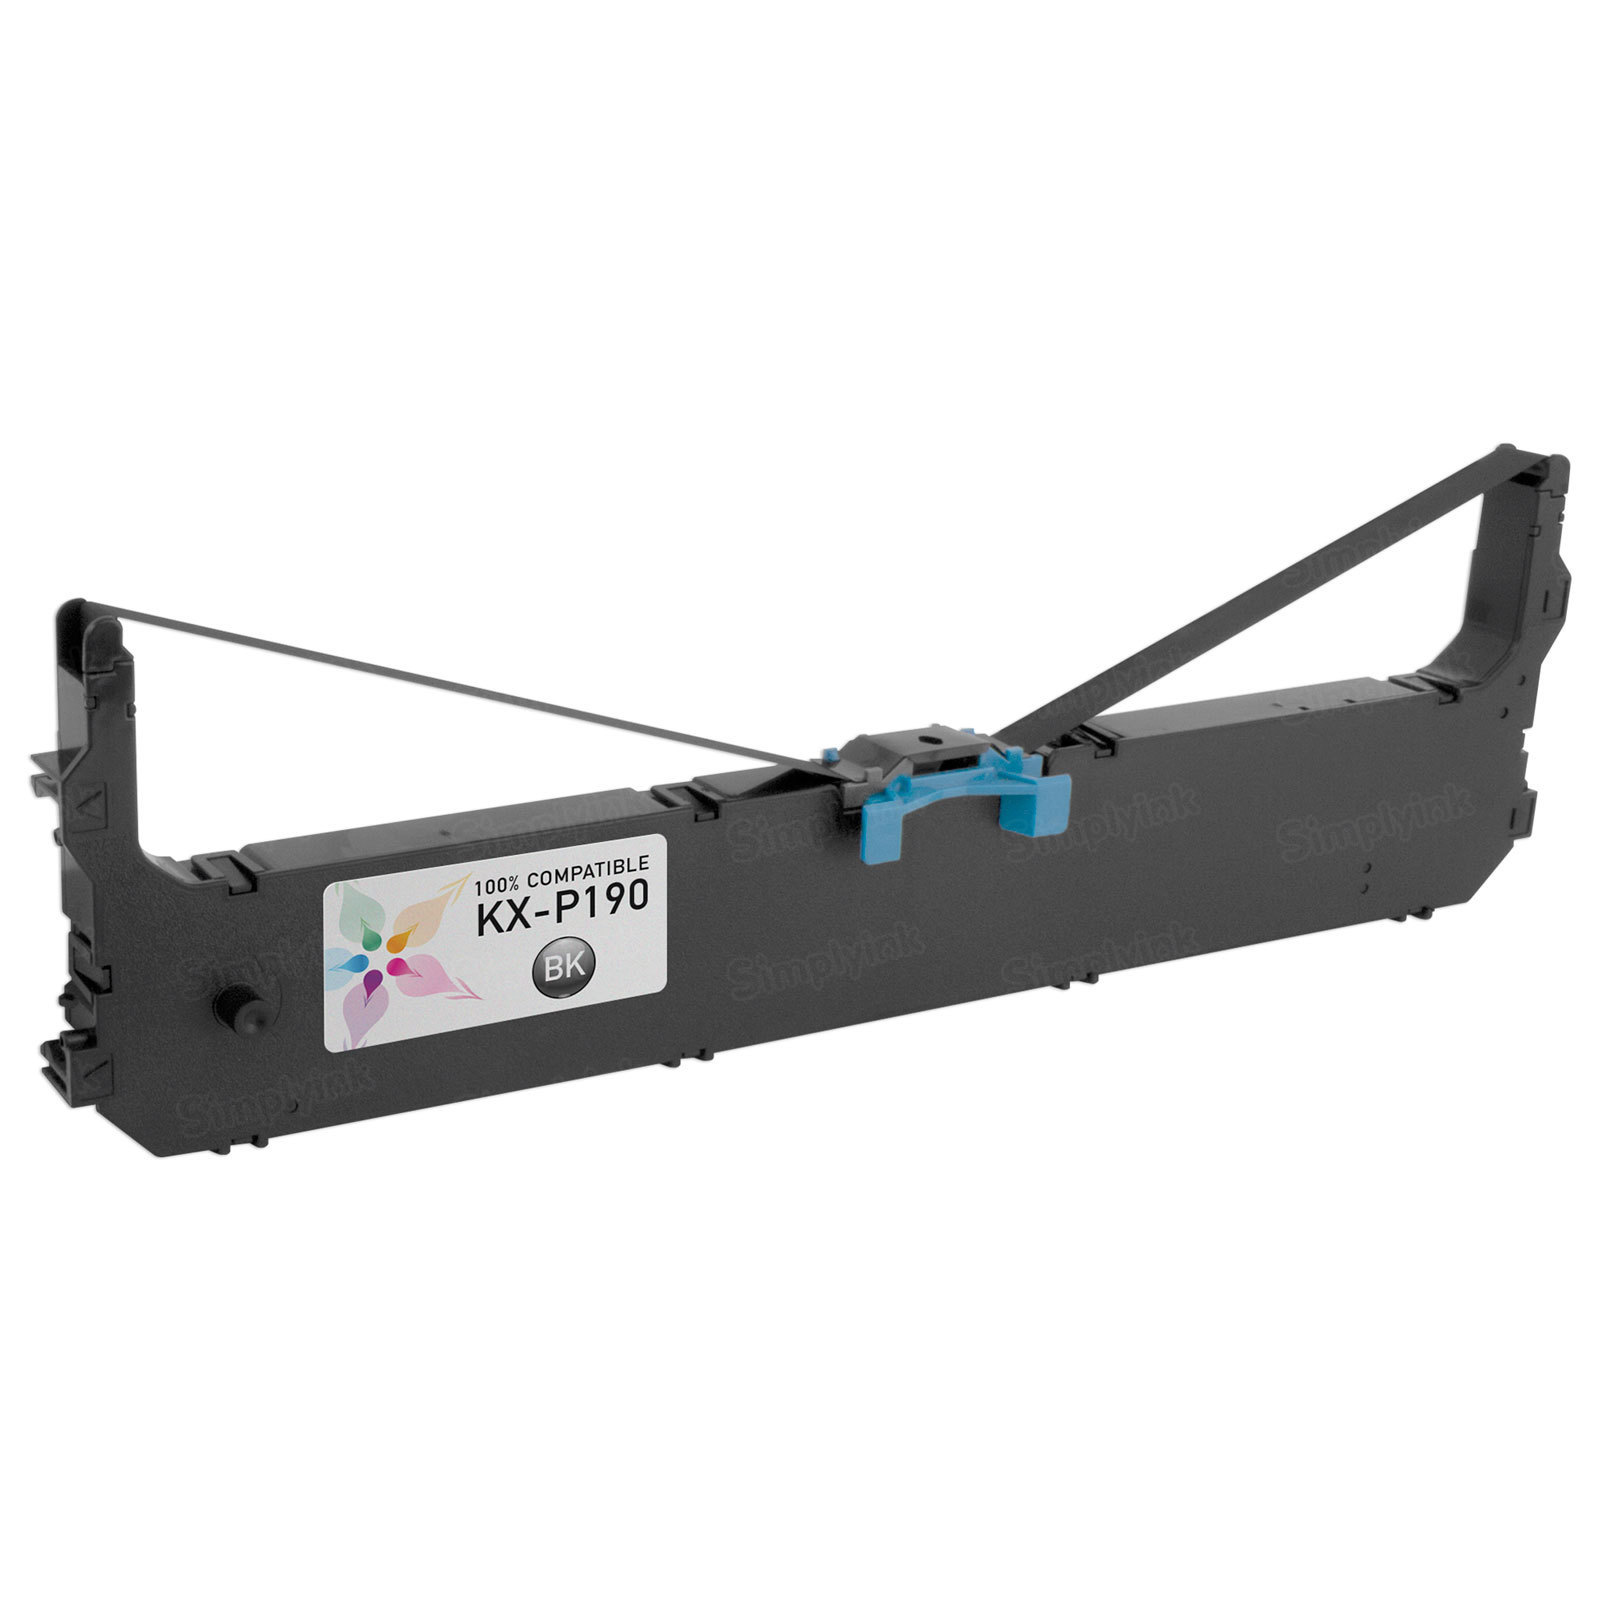 Panasonic Compatible Black KX-P190 Ribbon